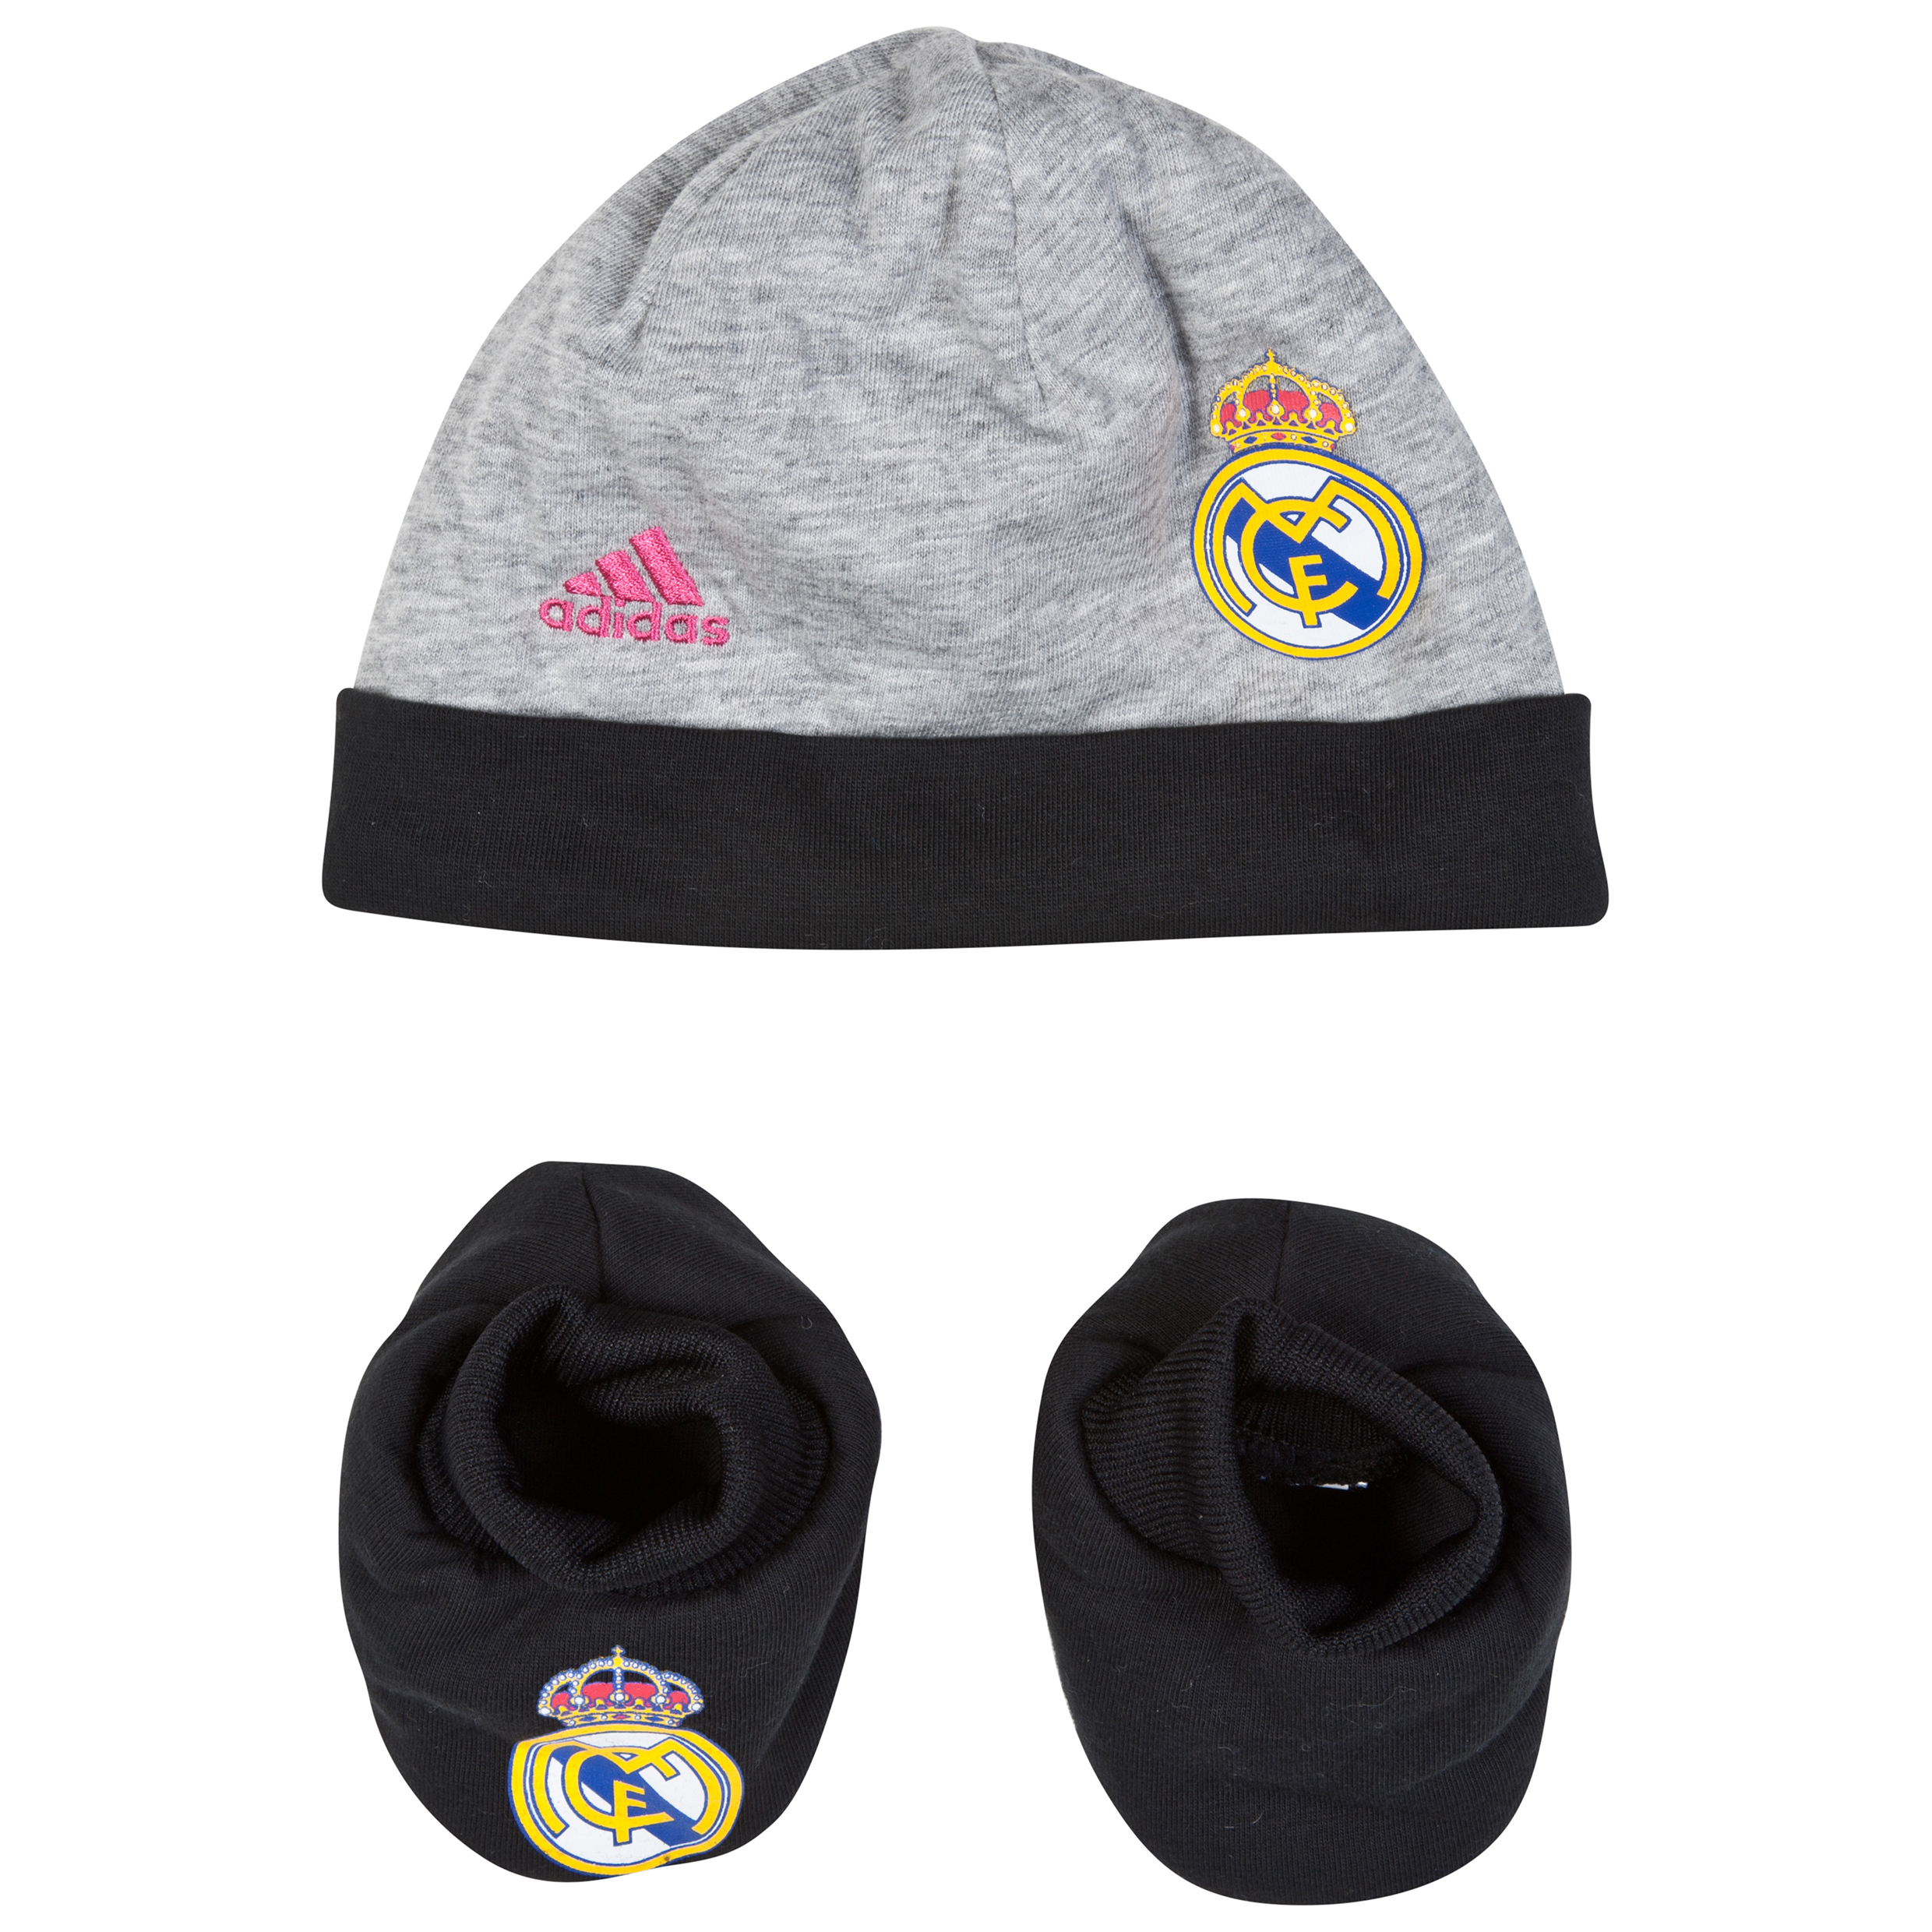 Real Madrid Gift Set